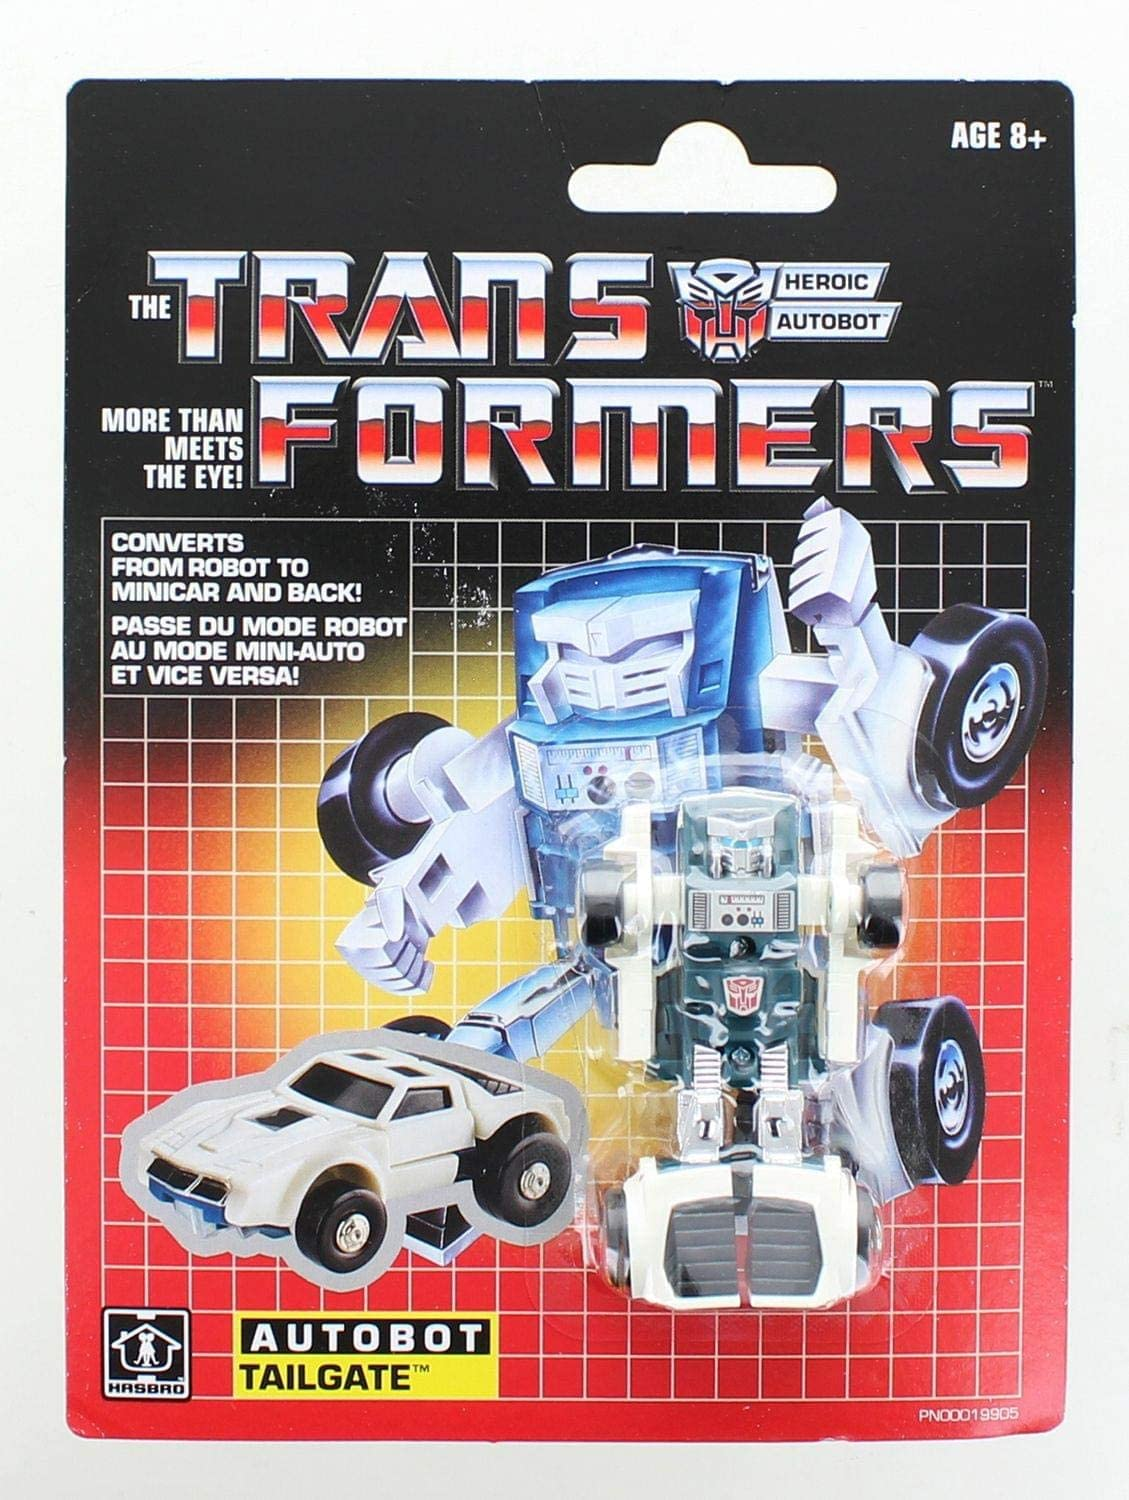 NEW Transformers G1 Autobot Tailgate 2018 Reissue NEW in package